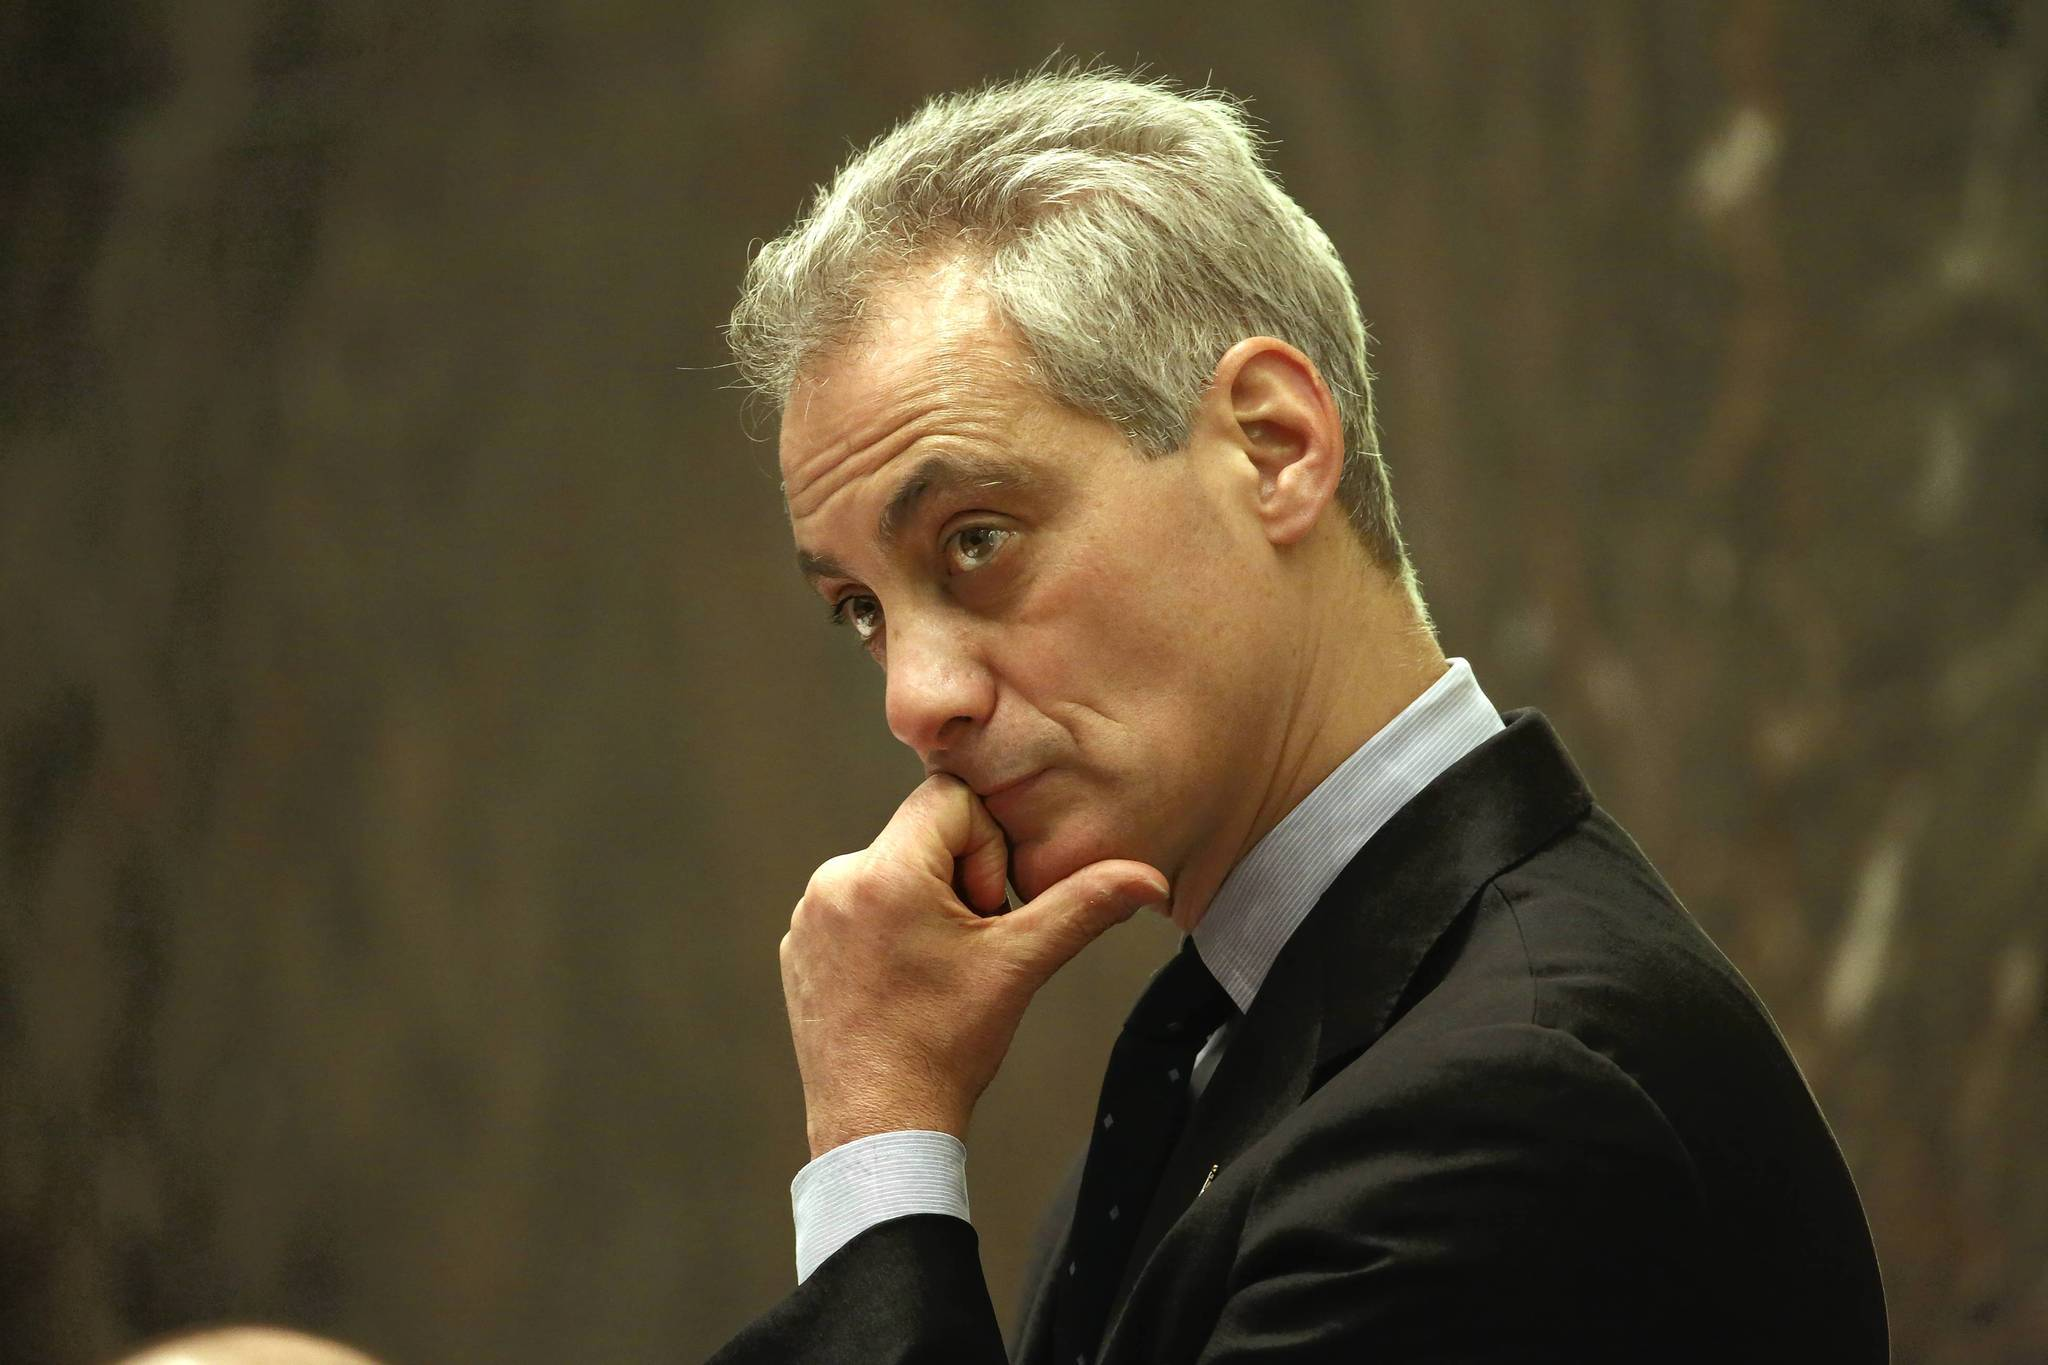 While Mayor Rahm Emanuel presided over a City Council meeting on Wednesday, his pension plan to raise city property taxes and cut city worker retirement benefits stalled in Springfield, at least for a day.